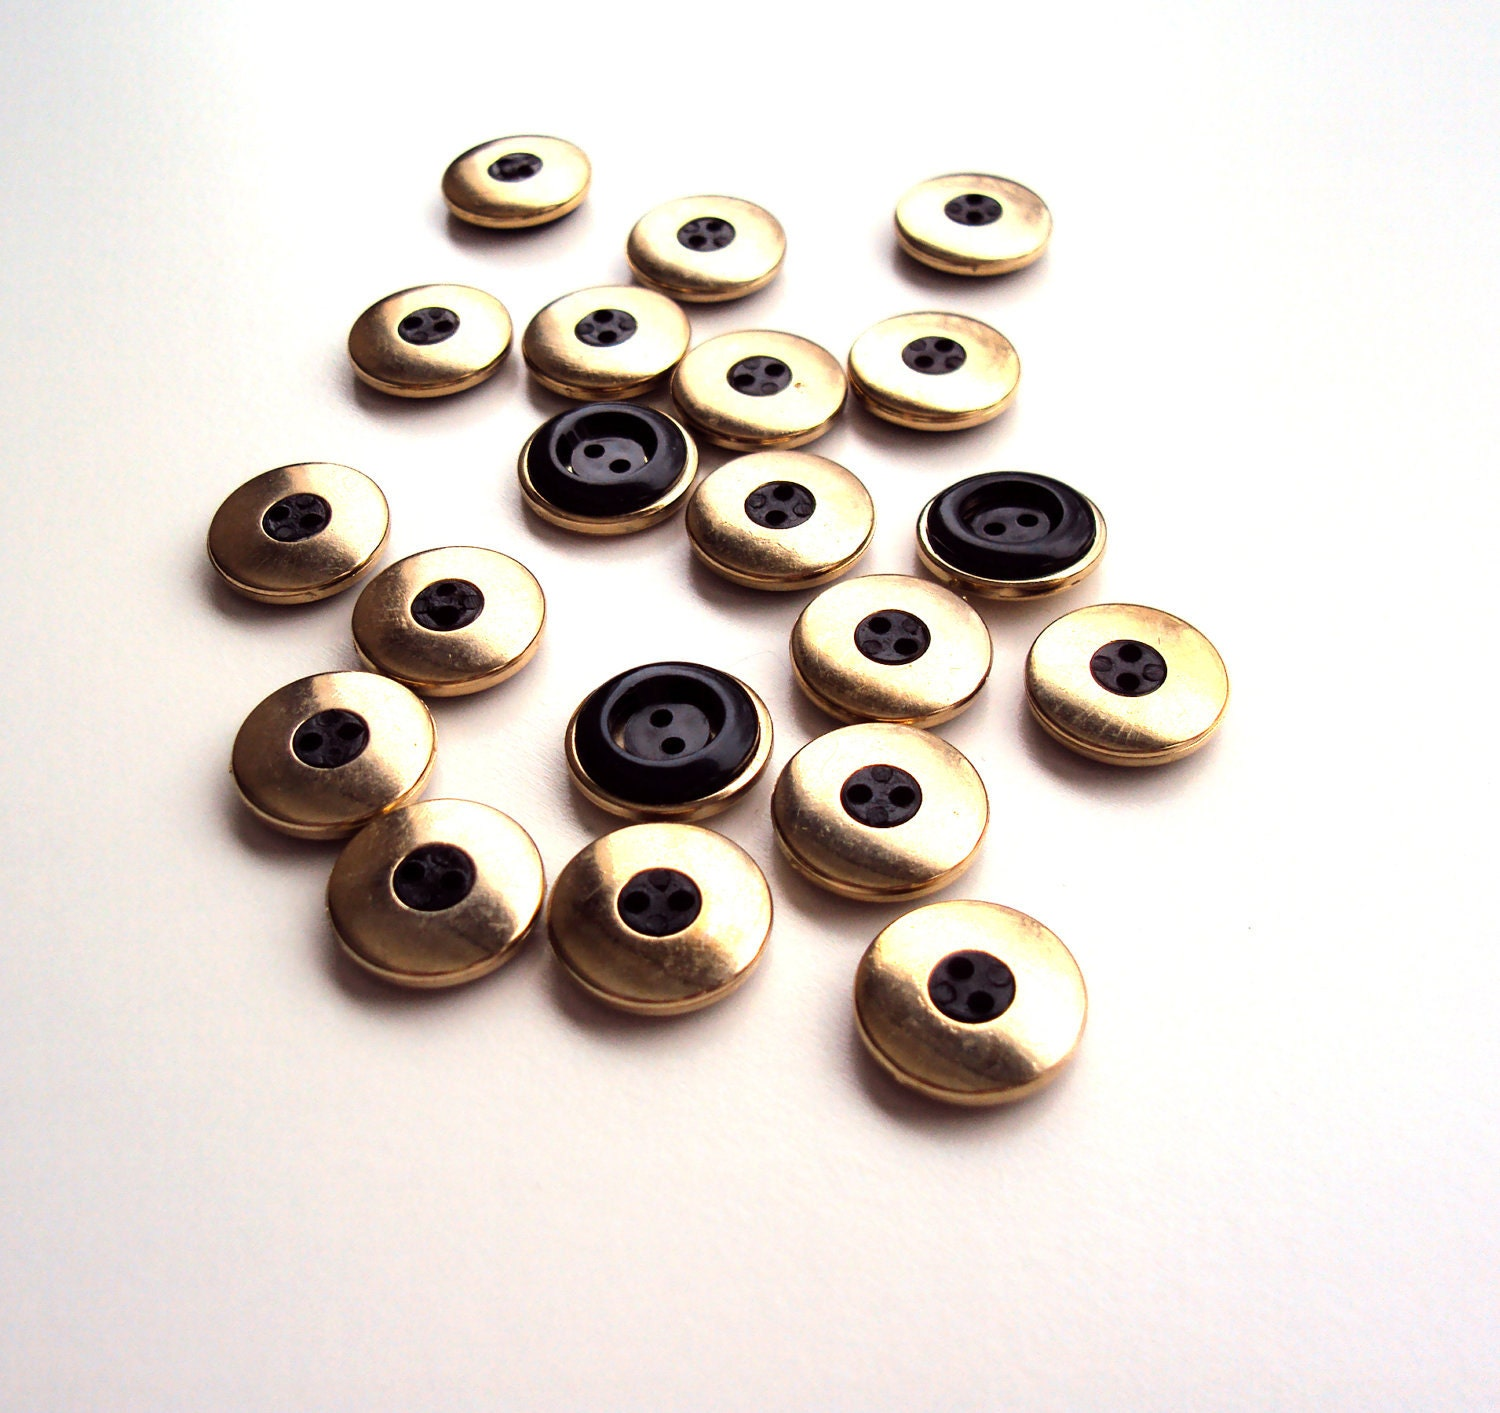 Vintage Gold and Black Buttons from the 50's